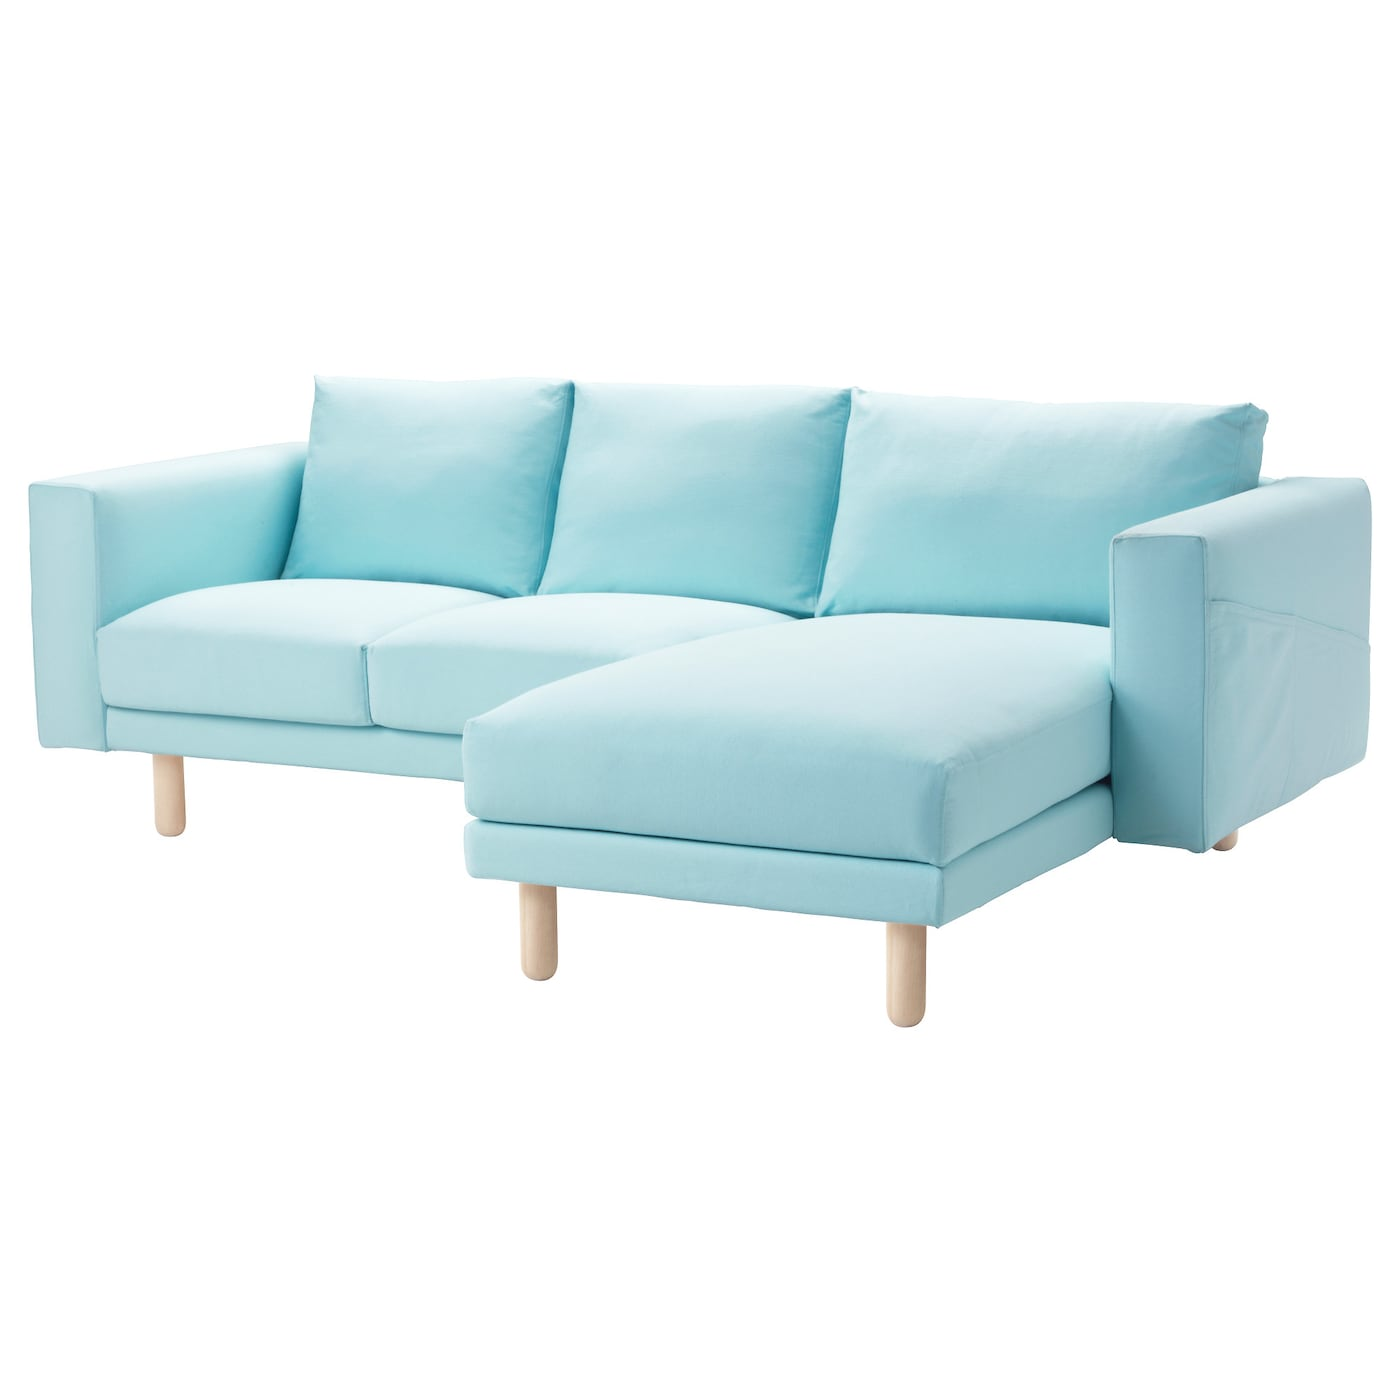 Norsborg two seat sofa with chaise longue gr sbo light for Chaise longue sofa